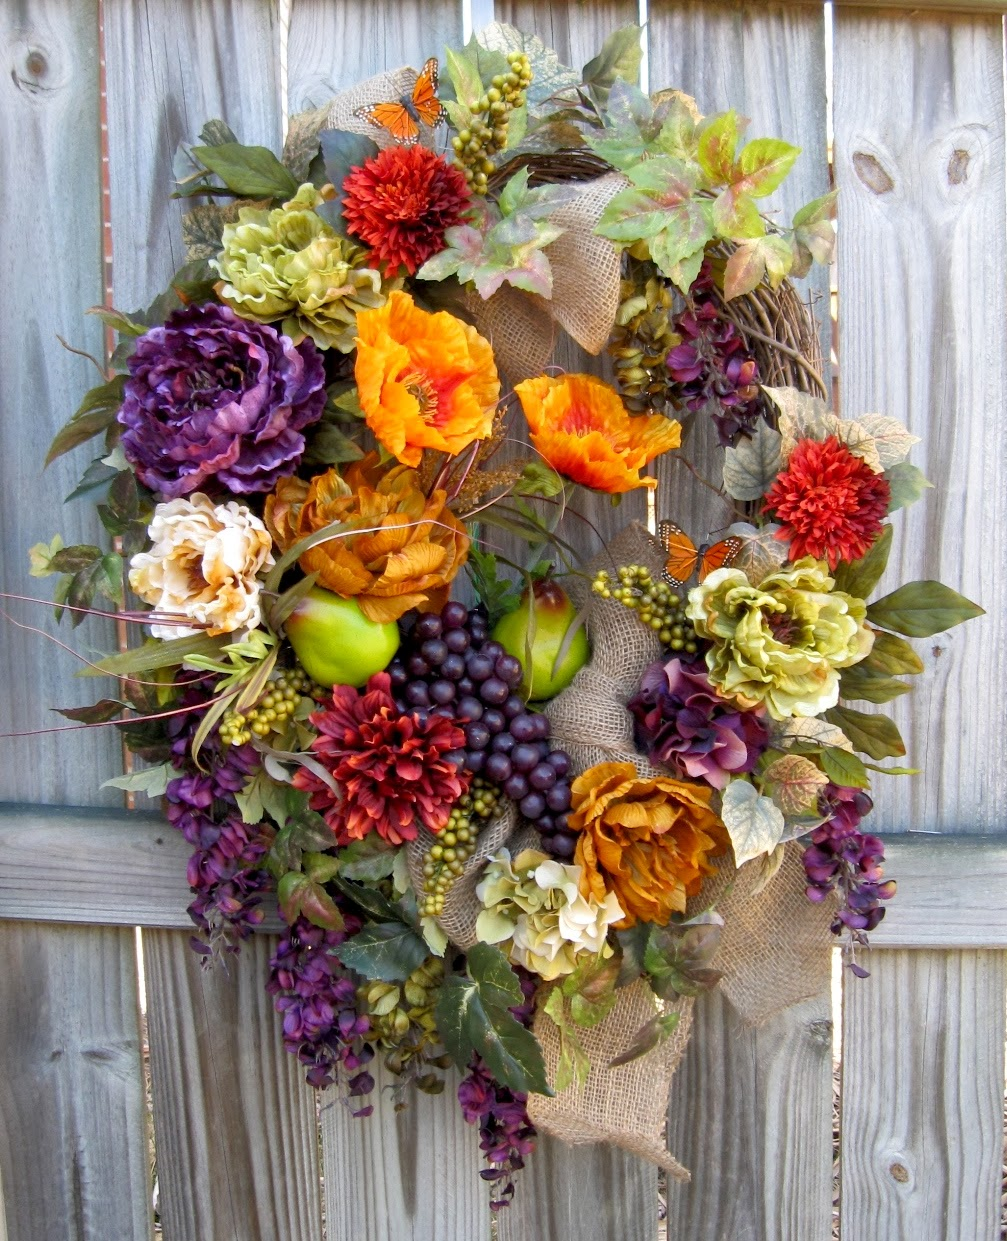 Tuscan Wisteria, Poppy, Peony Wreath, Grapes, fruit, Pears, Summer, Italian, burlap